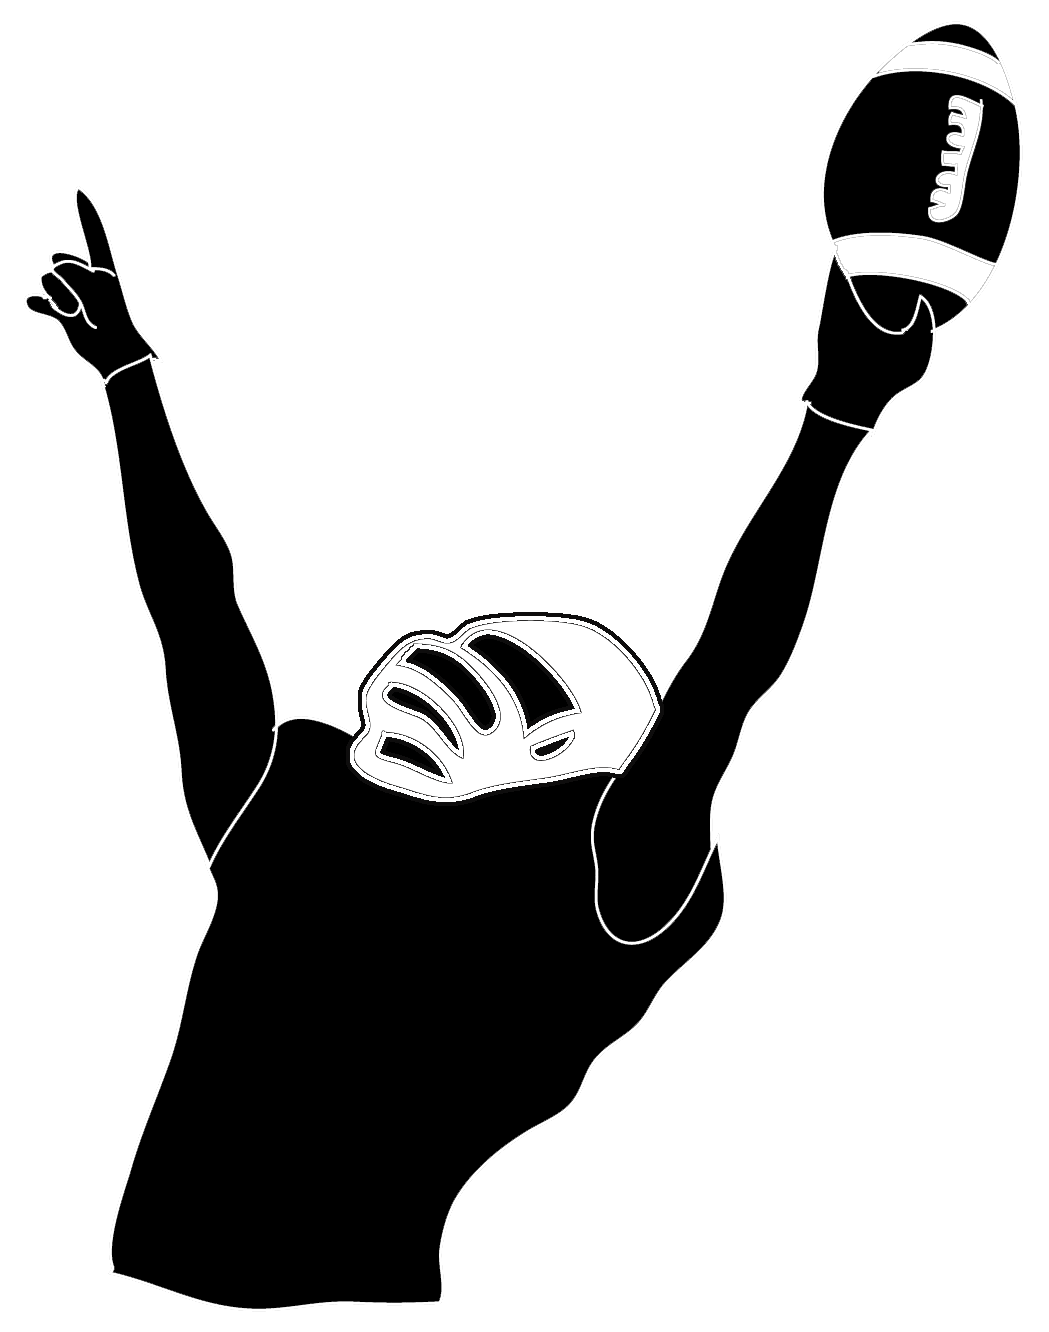 Football Player Silhouette T.